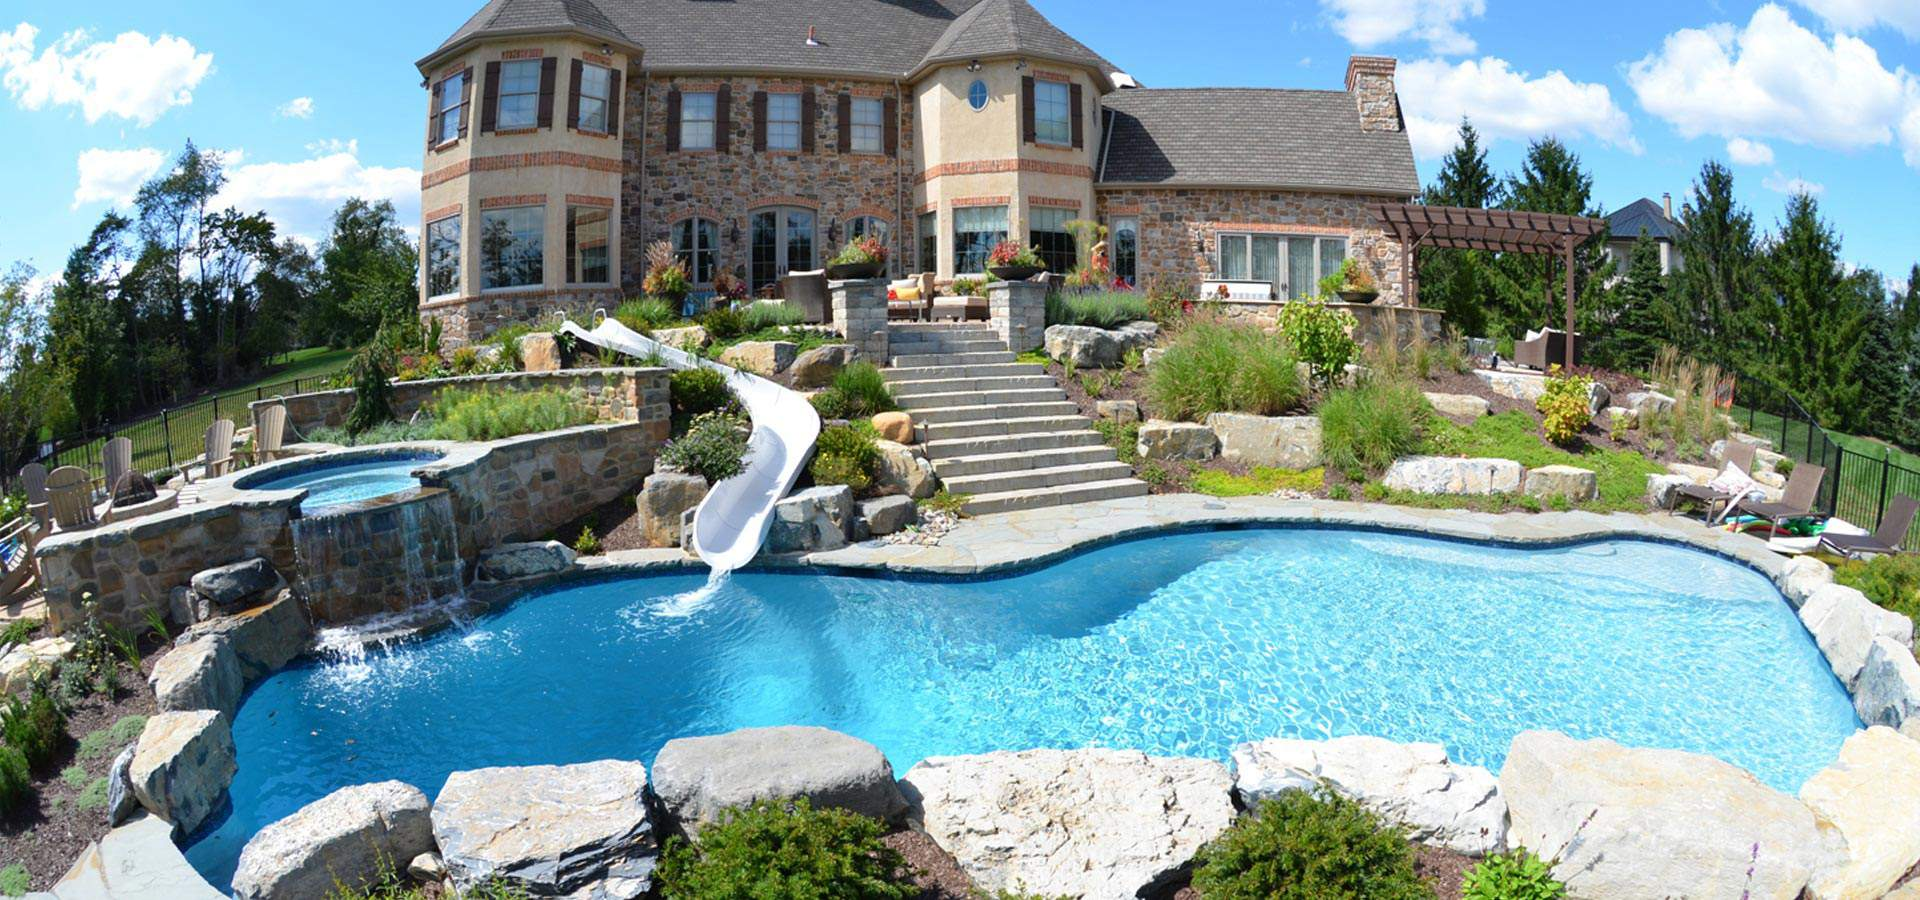 1 pool builder in lehigh valley pa best inground pools for Best in ground pool